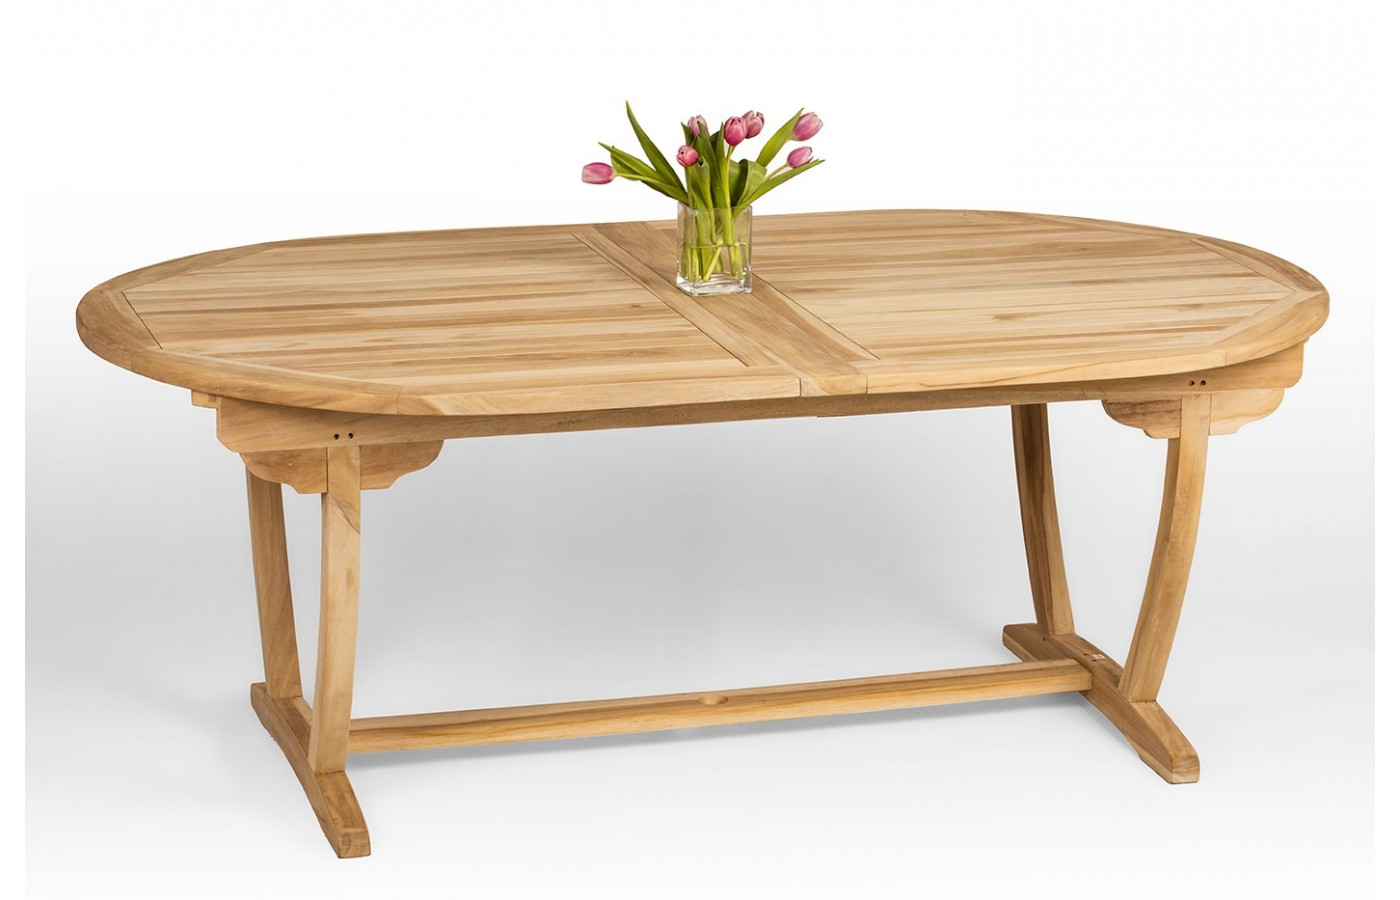 - A Large Teak Wood Garden Table With Folding